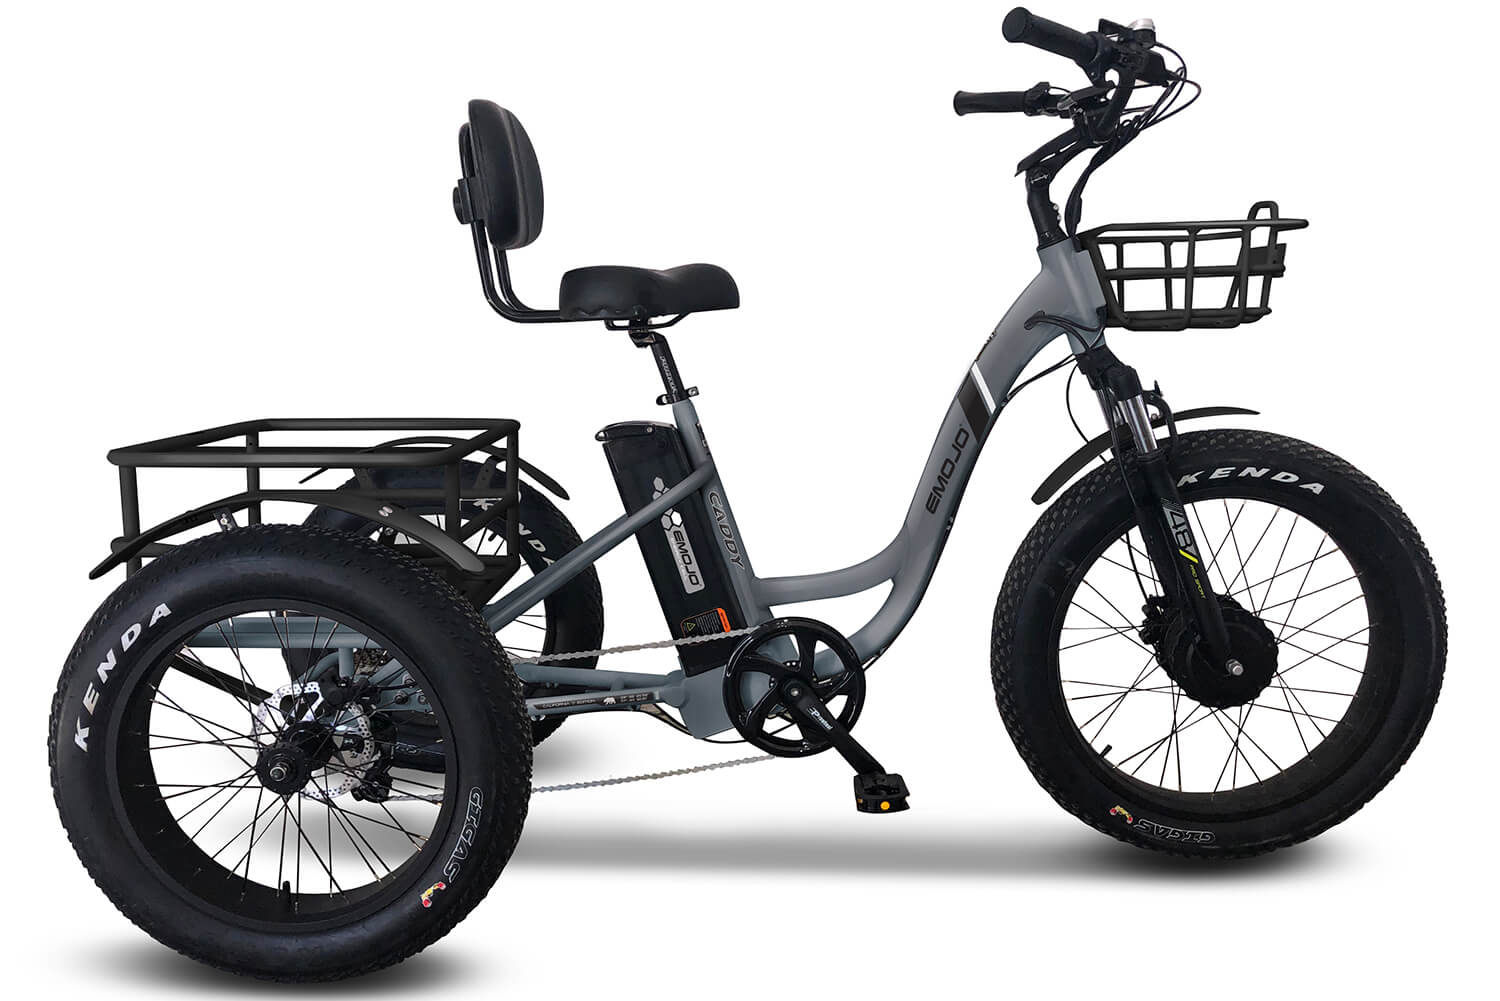 EMOJO Caddy Pro Fat Tire Electric Trike Gray